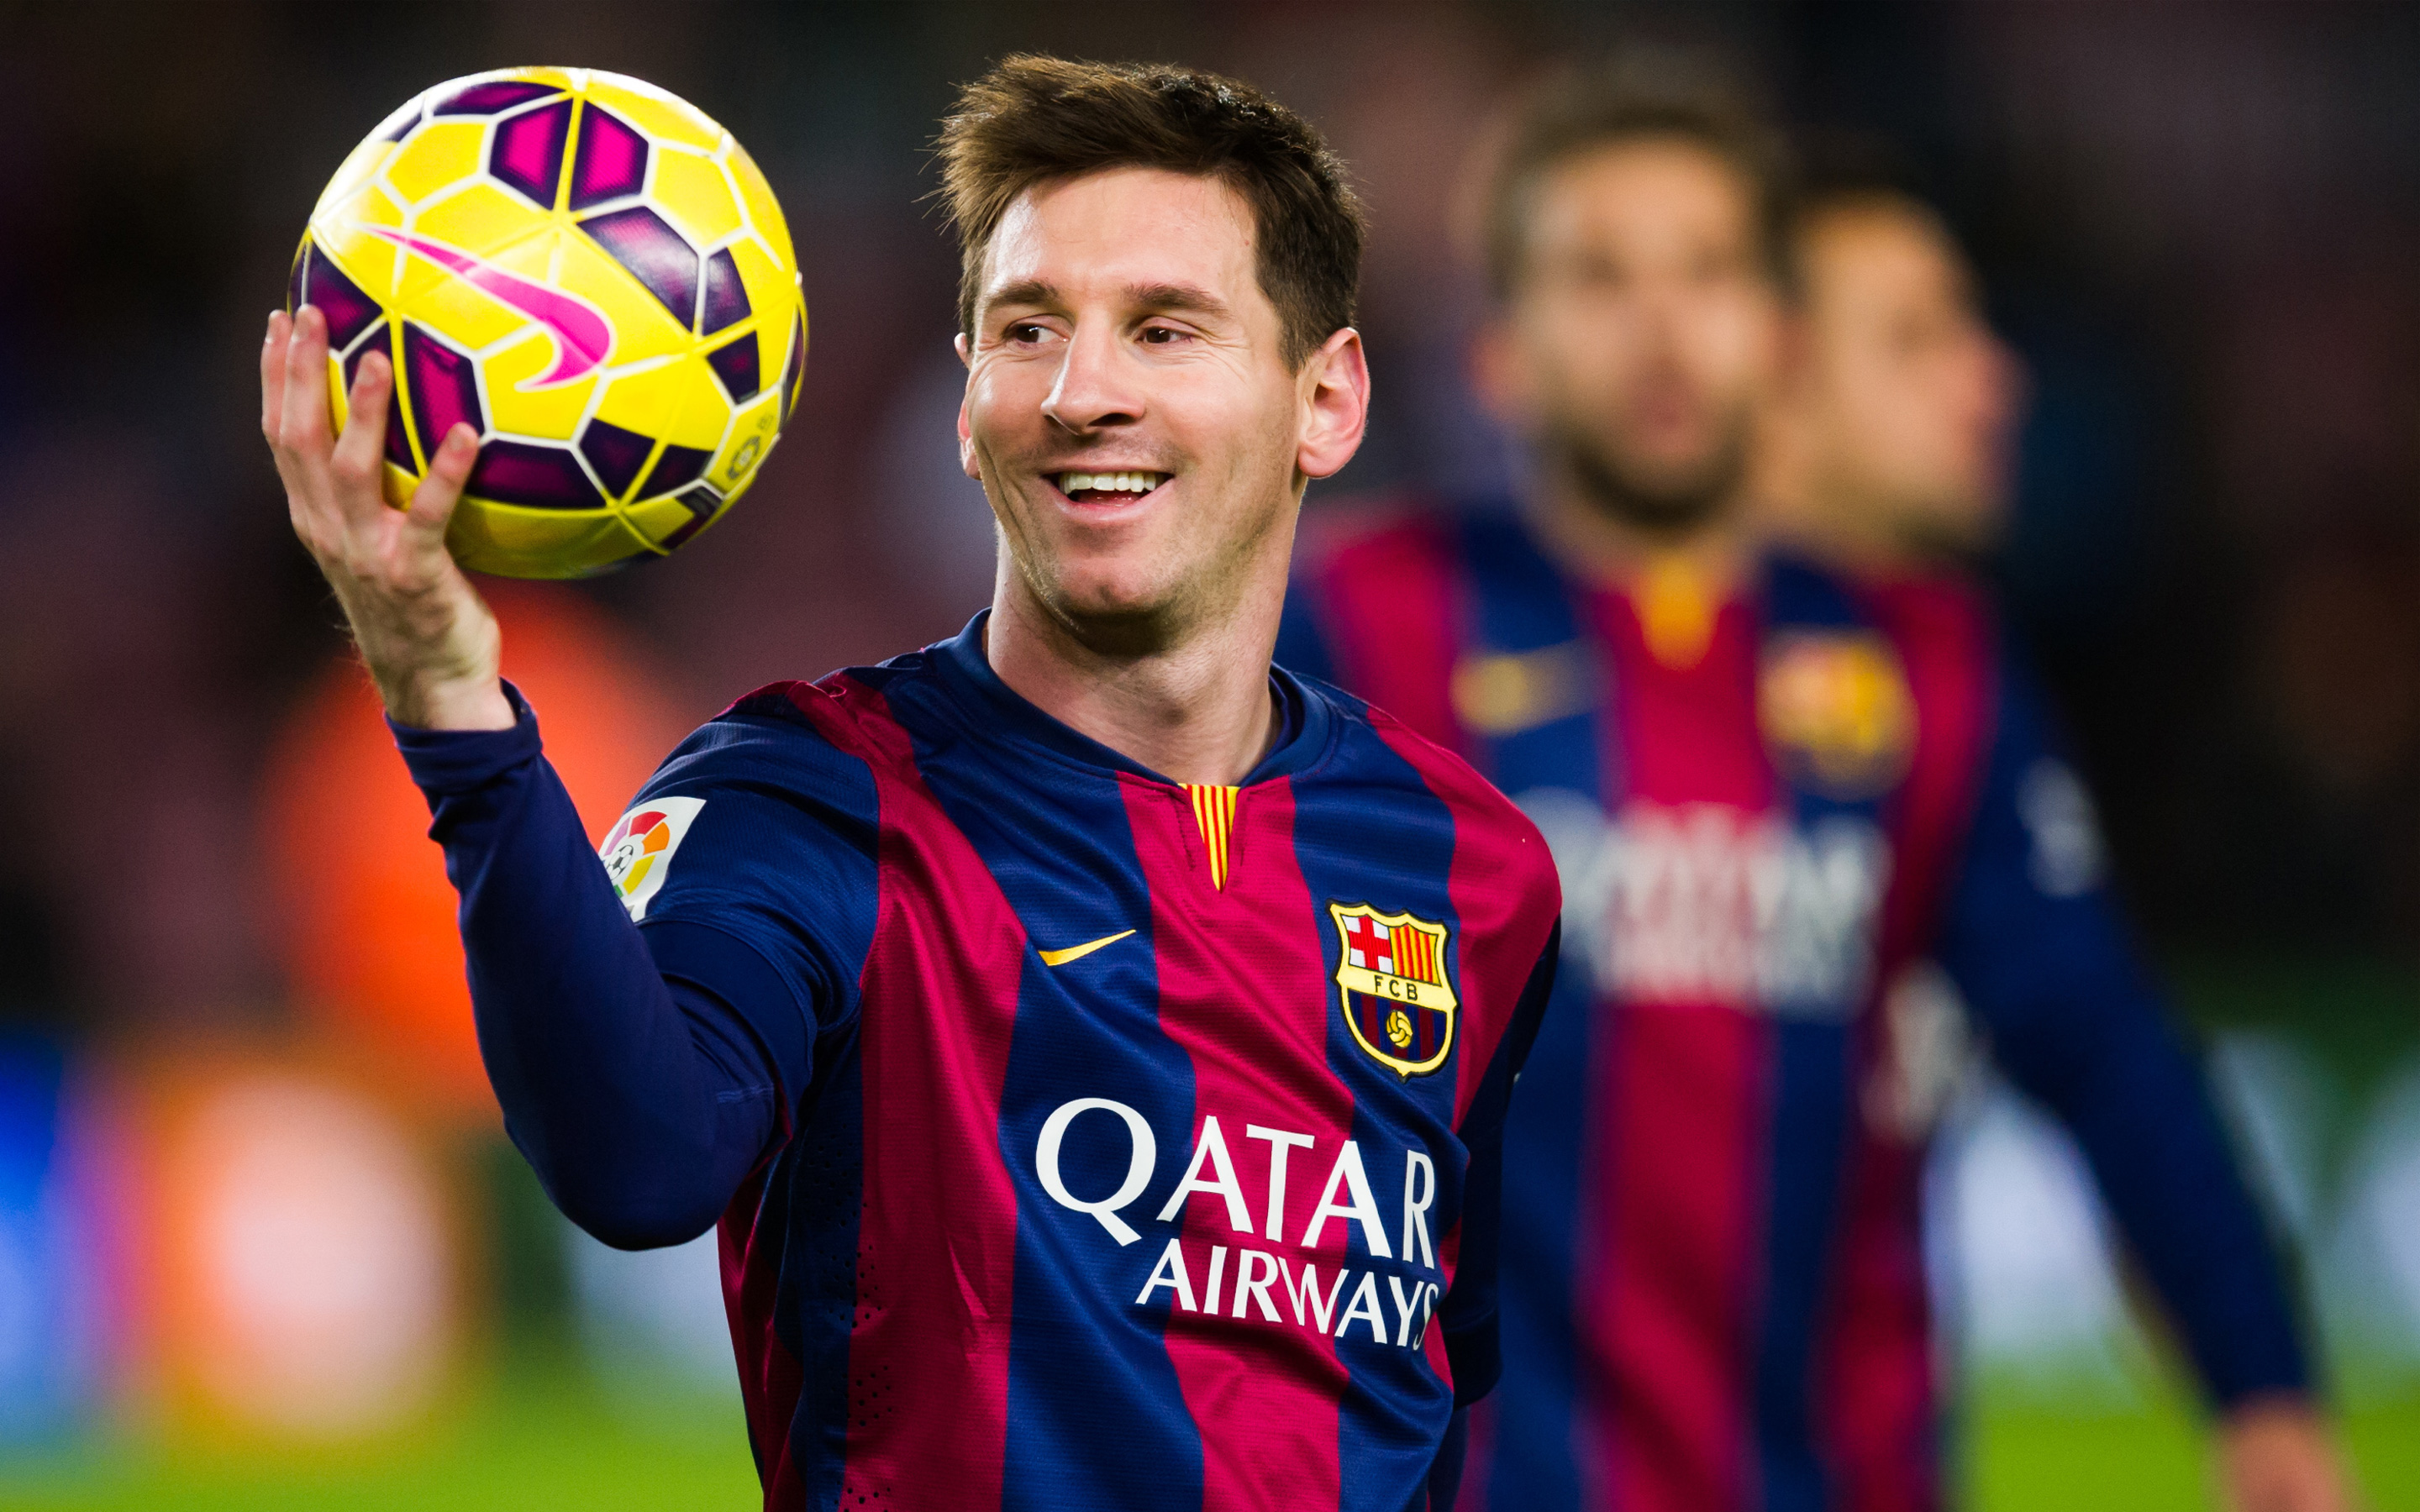 argentine soccer hero lionel messi is the world s best footballer